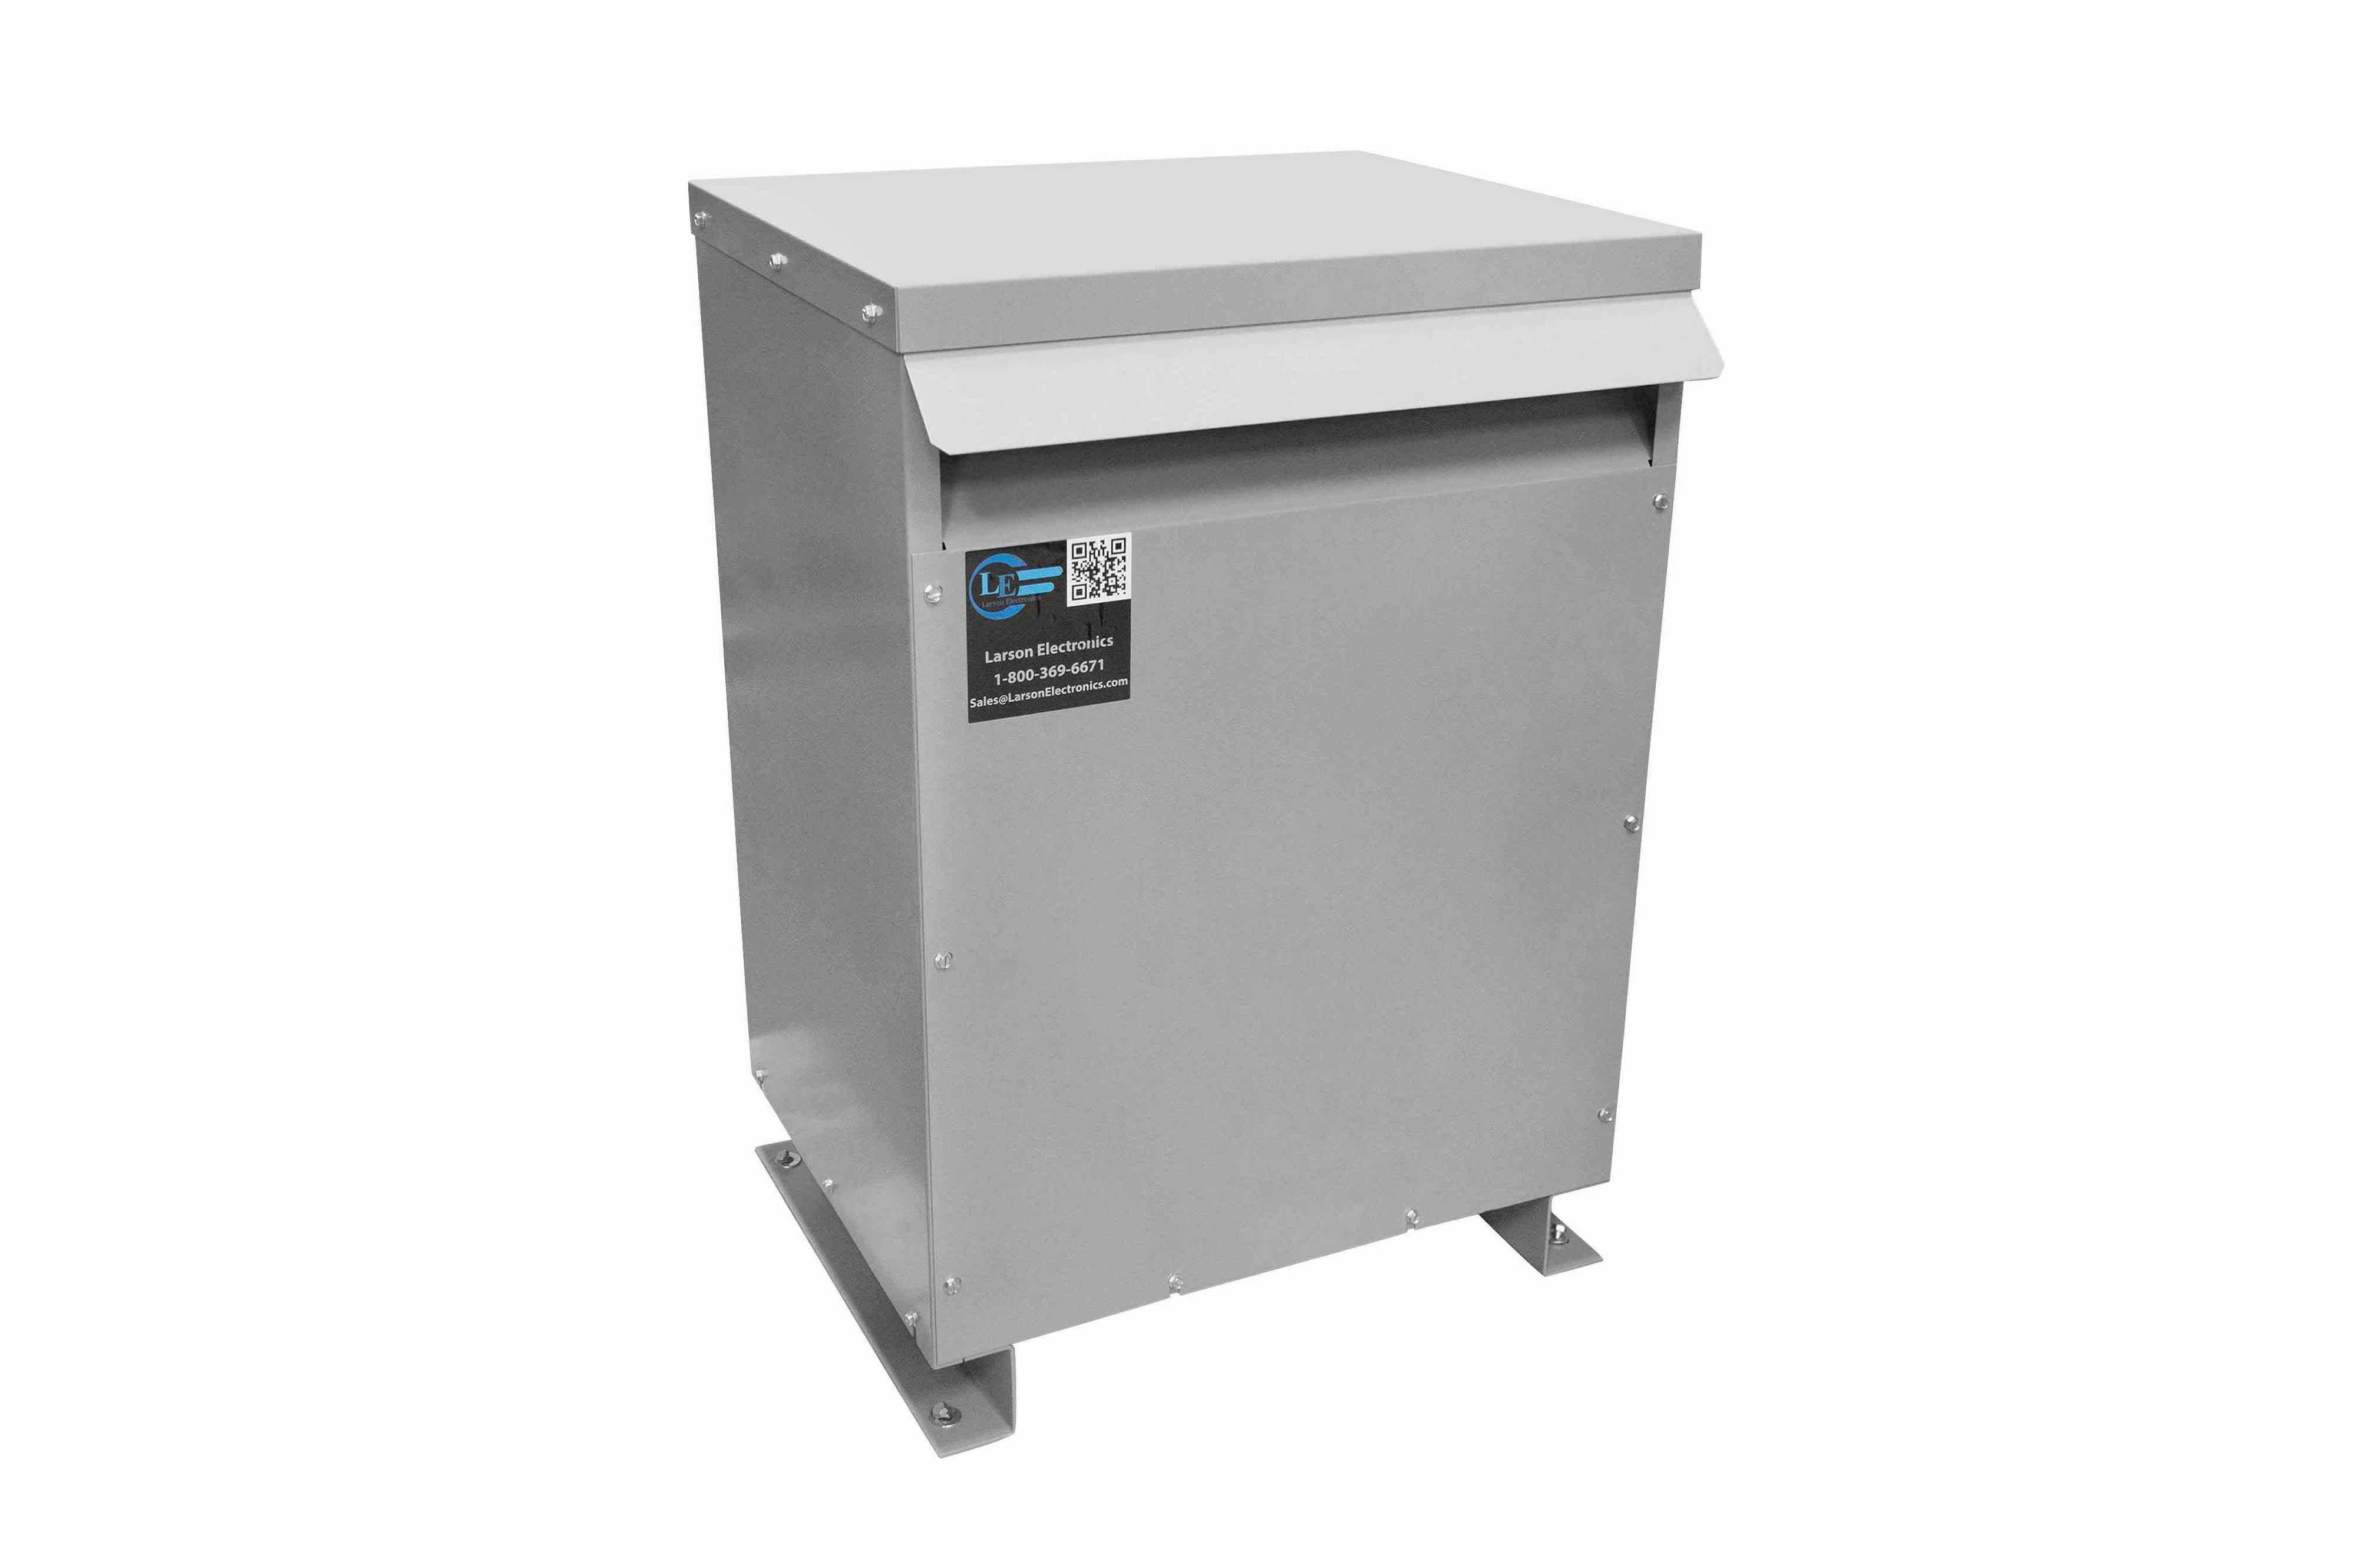 10 kVA 3PH Isolation Transformer, 460V Wye Primary, 400Y/231 Wye-N Secondary, N3R, Ventilated, 60 Hz